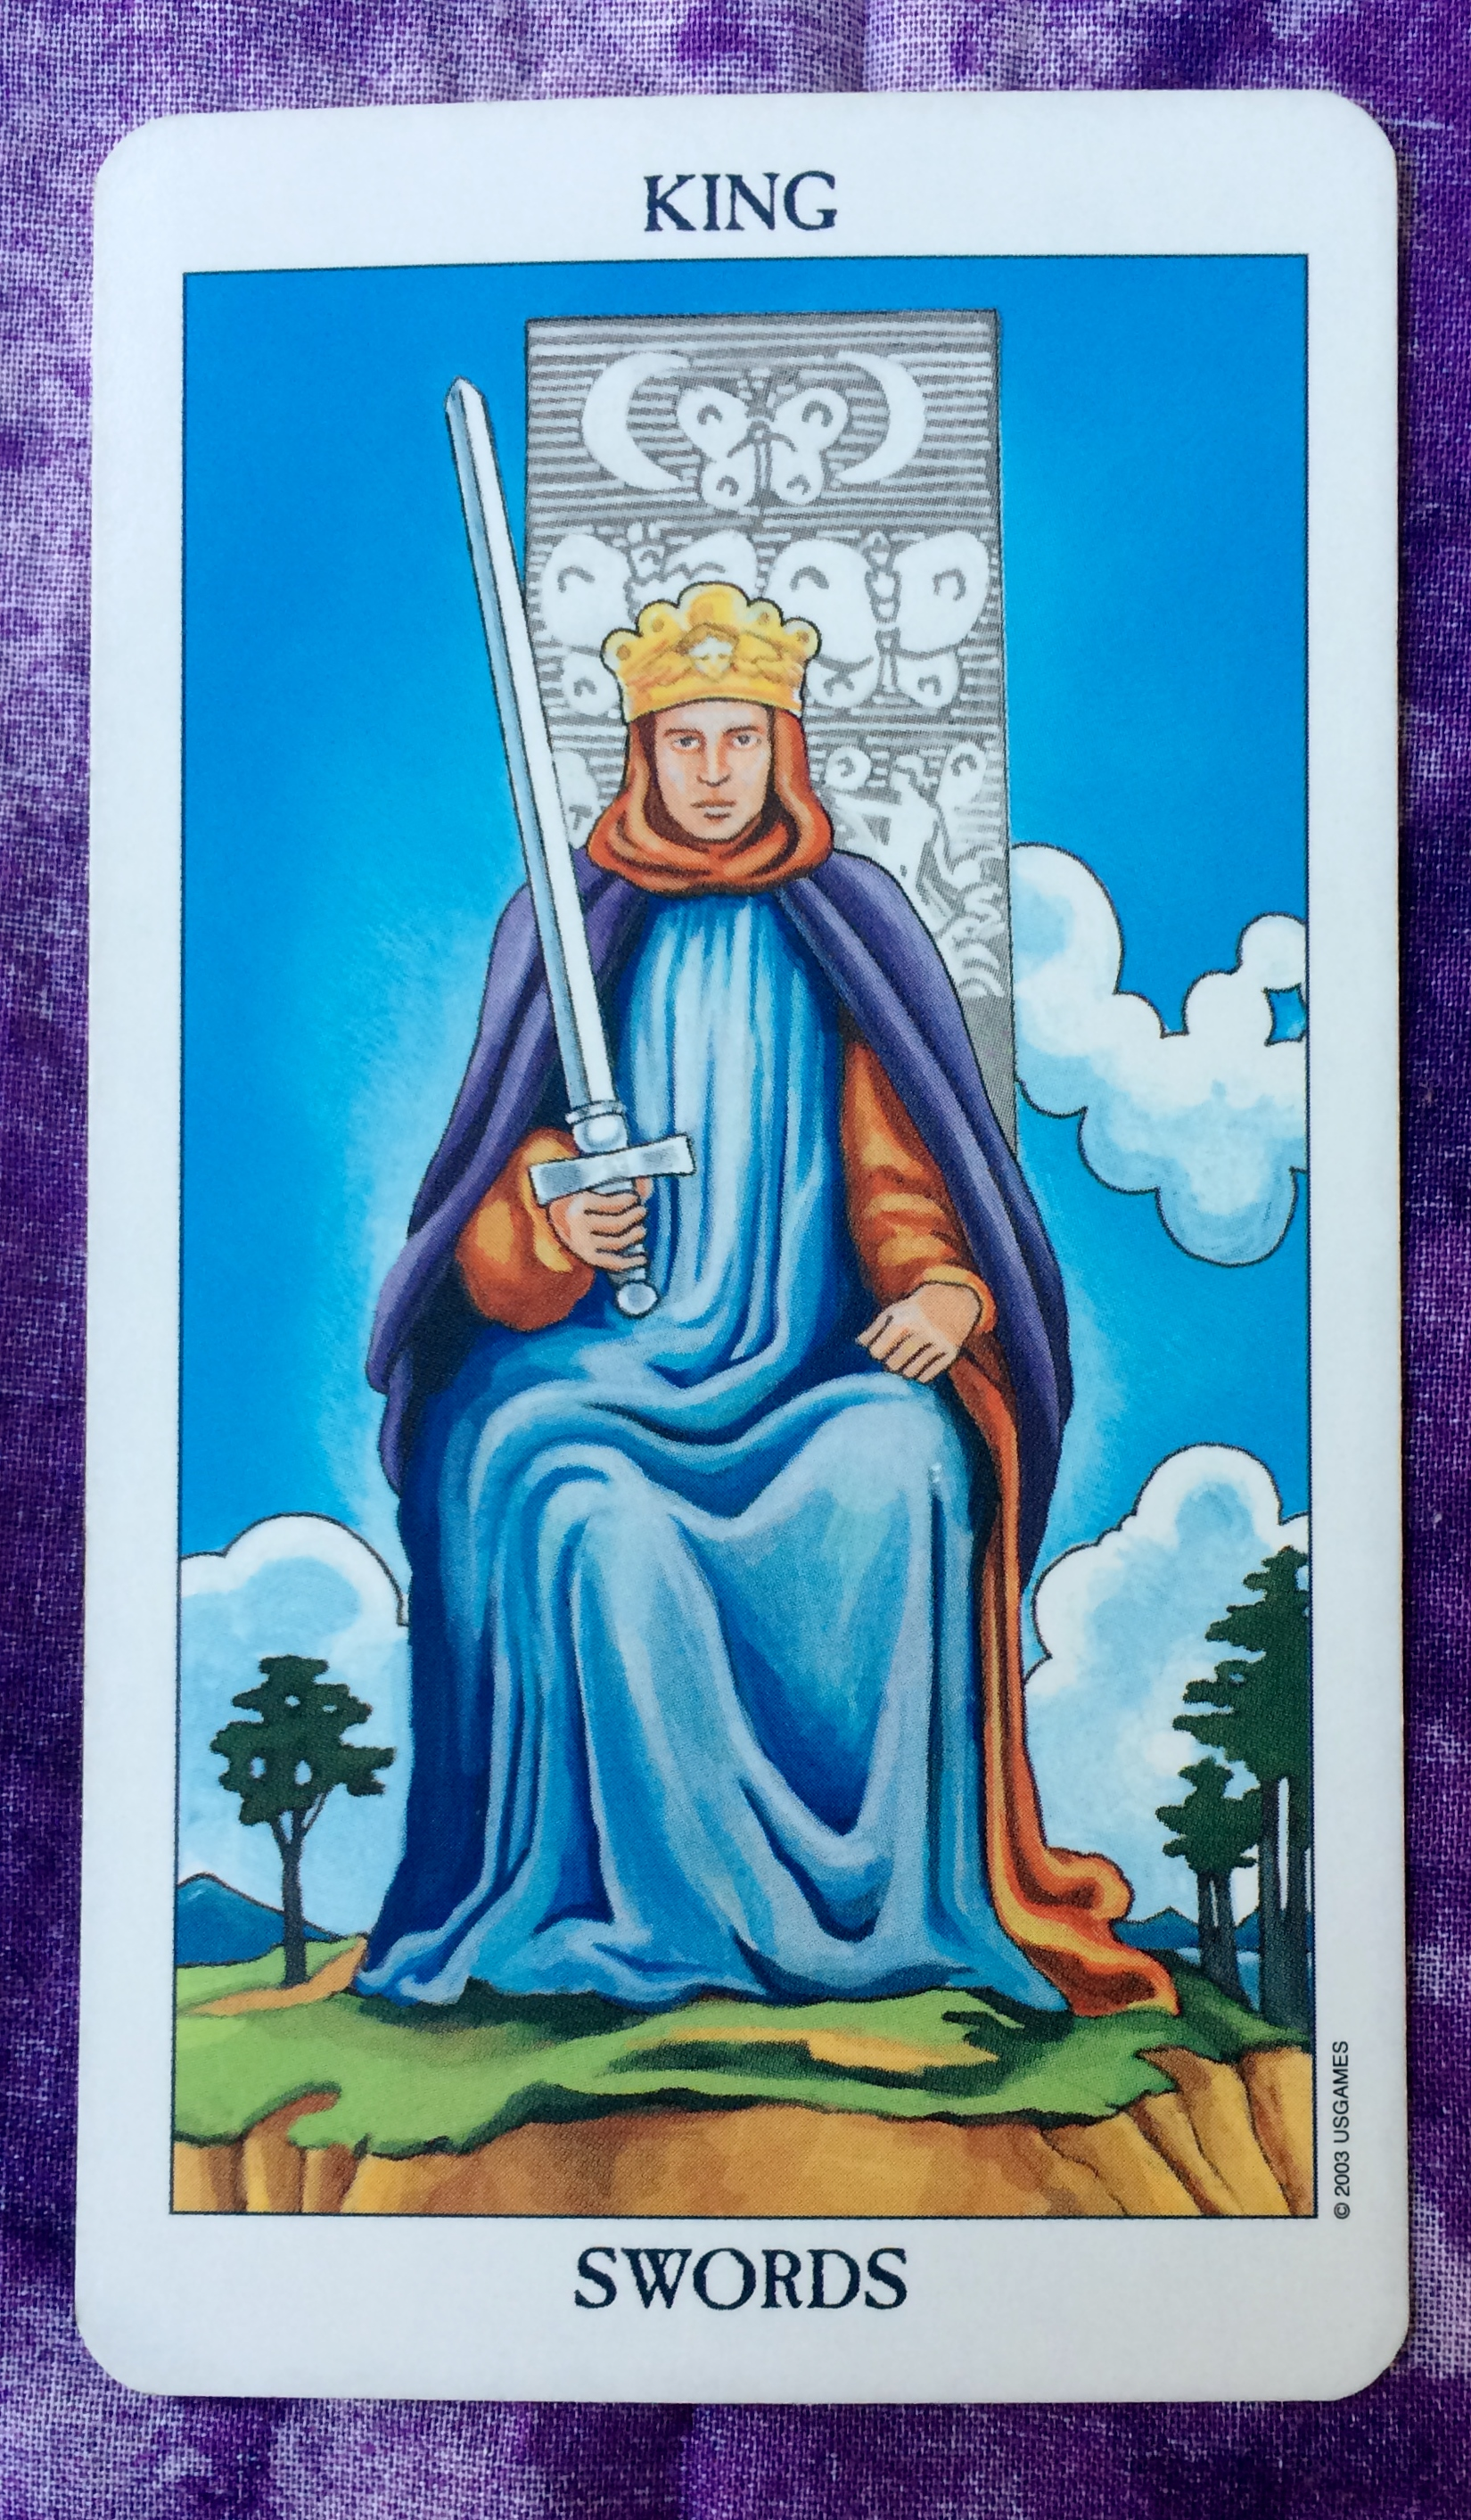 The Card For Today Is The King Of Swords You Are The Master Of Logic And Discernment Today No Hasty Actions Or Runaway Feelings You Will Be Able To